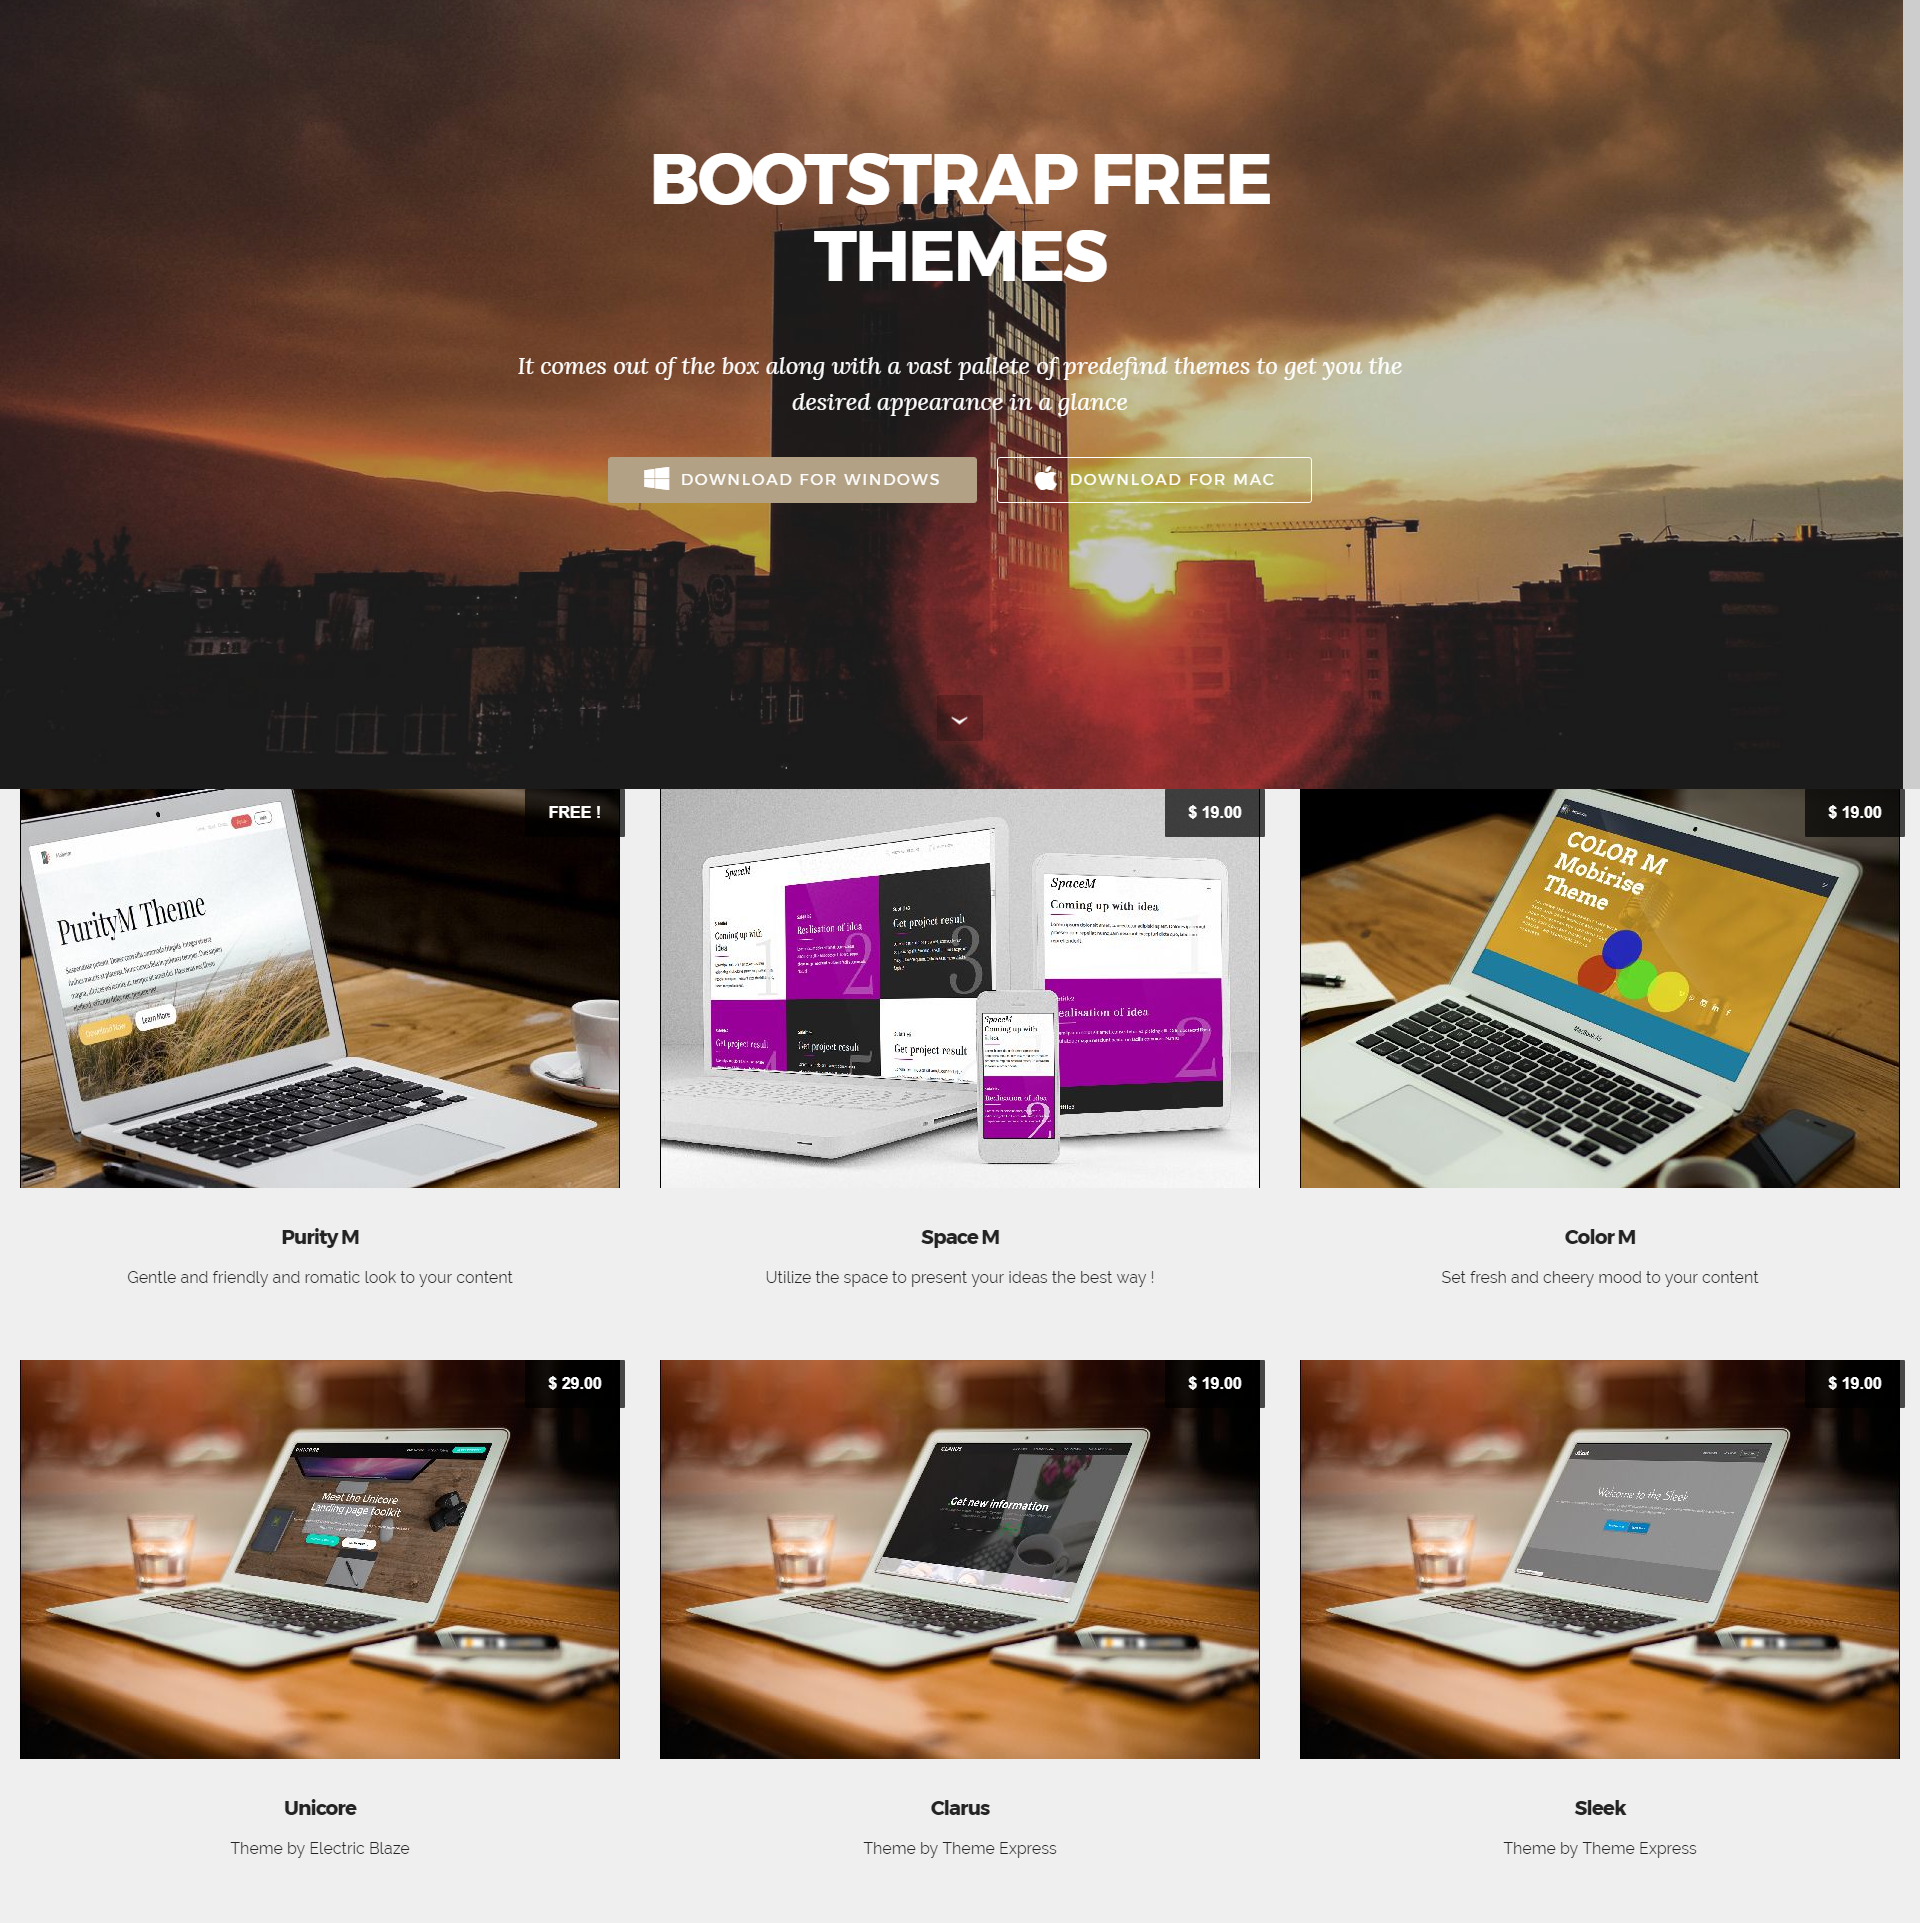 Bootstrap Free Themes